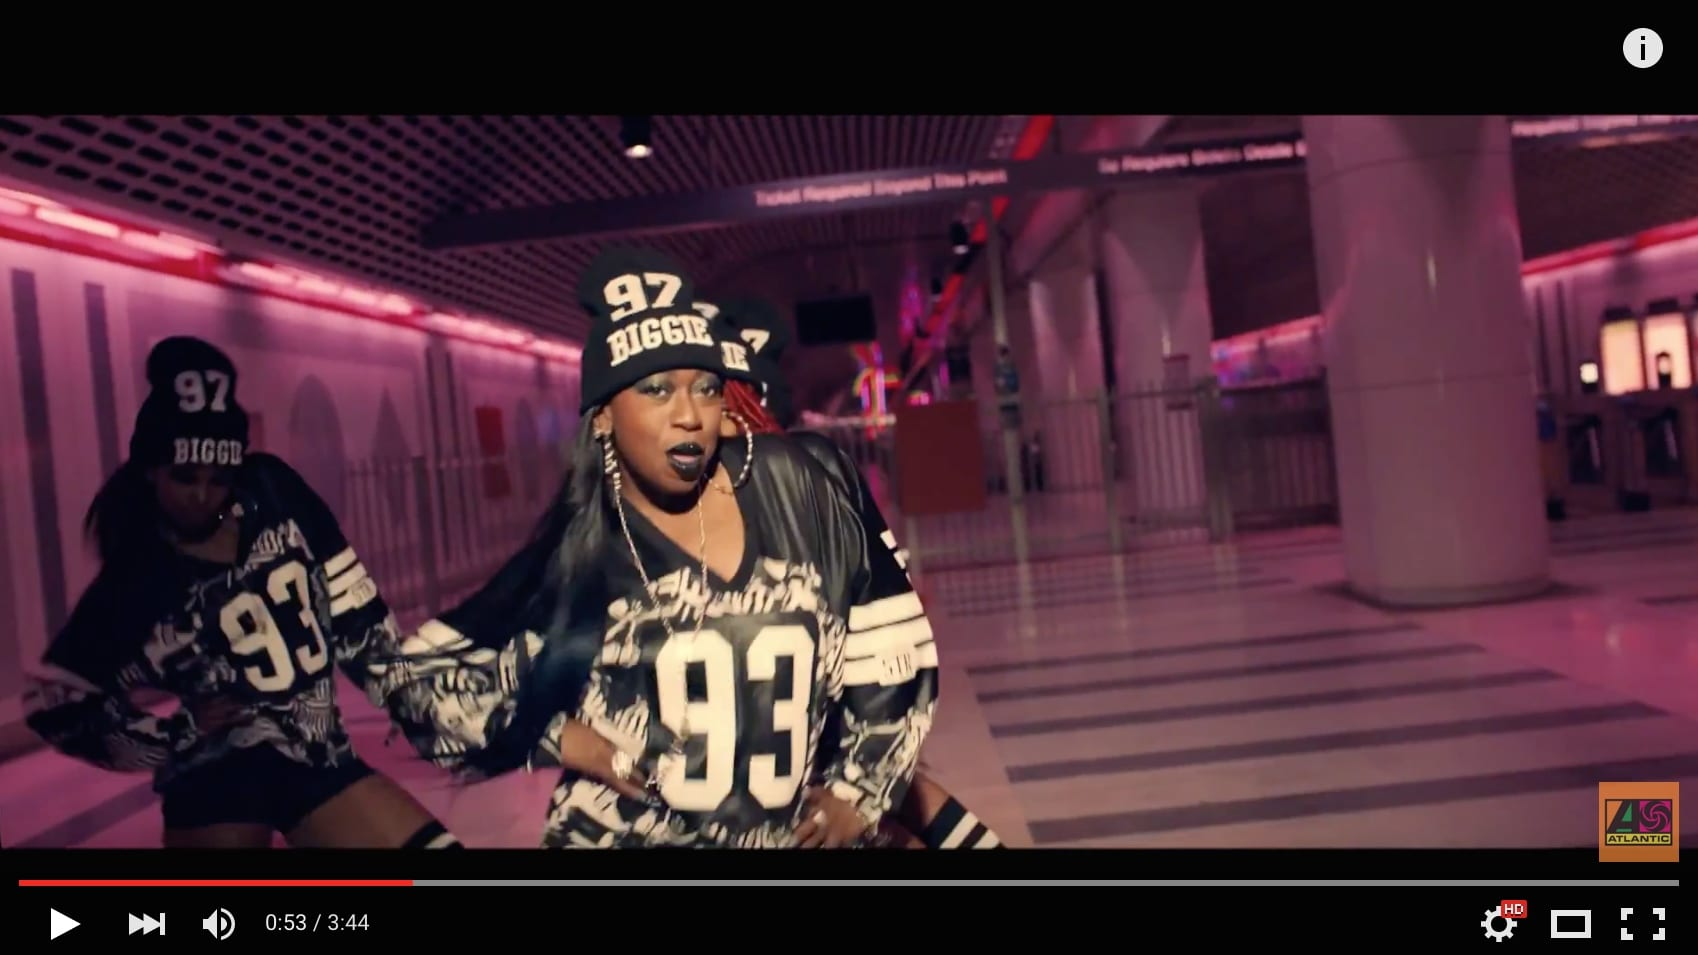 The subway gets a cameo in the new Missy Elliott video. Click above to watch. Mandatory warning: some adultish language of the hip-hop variety.